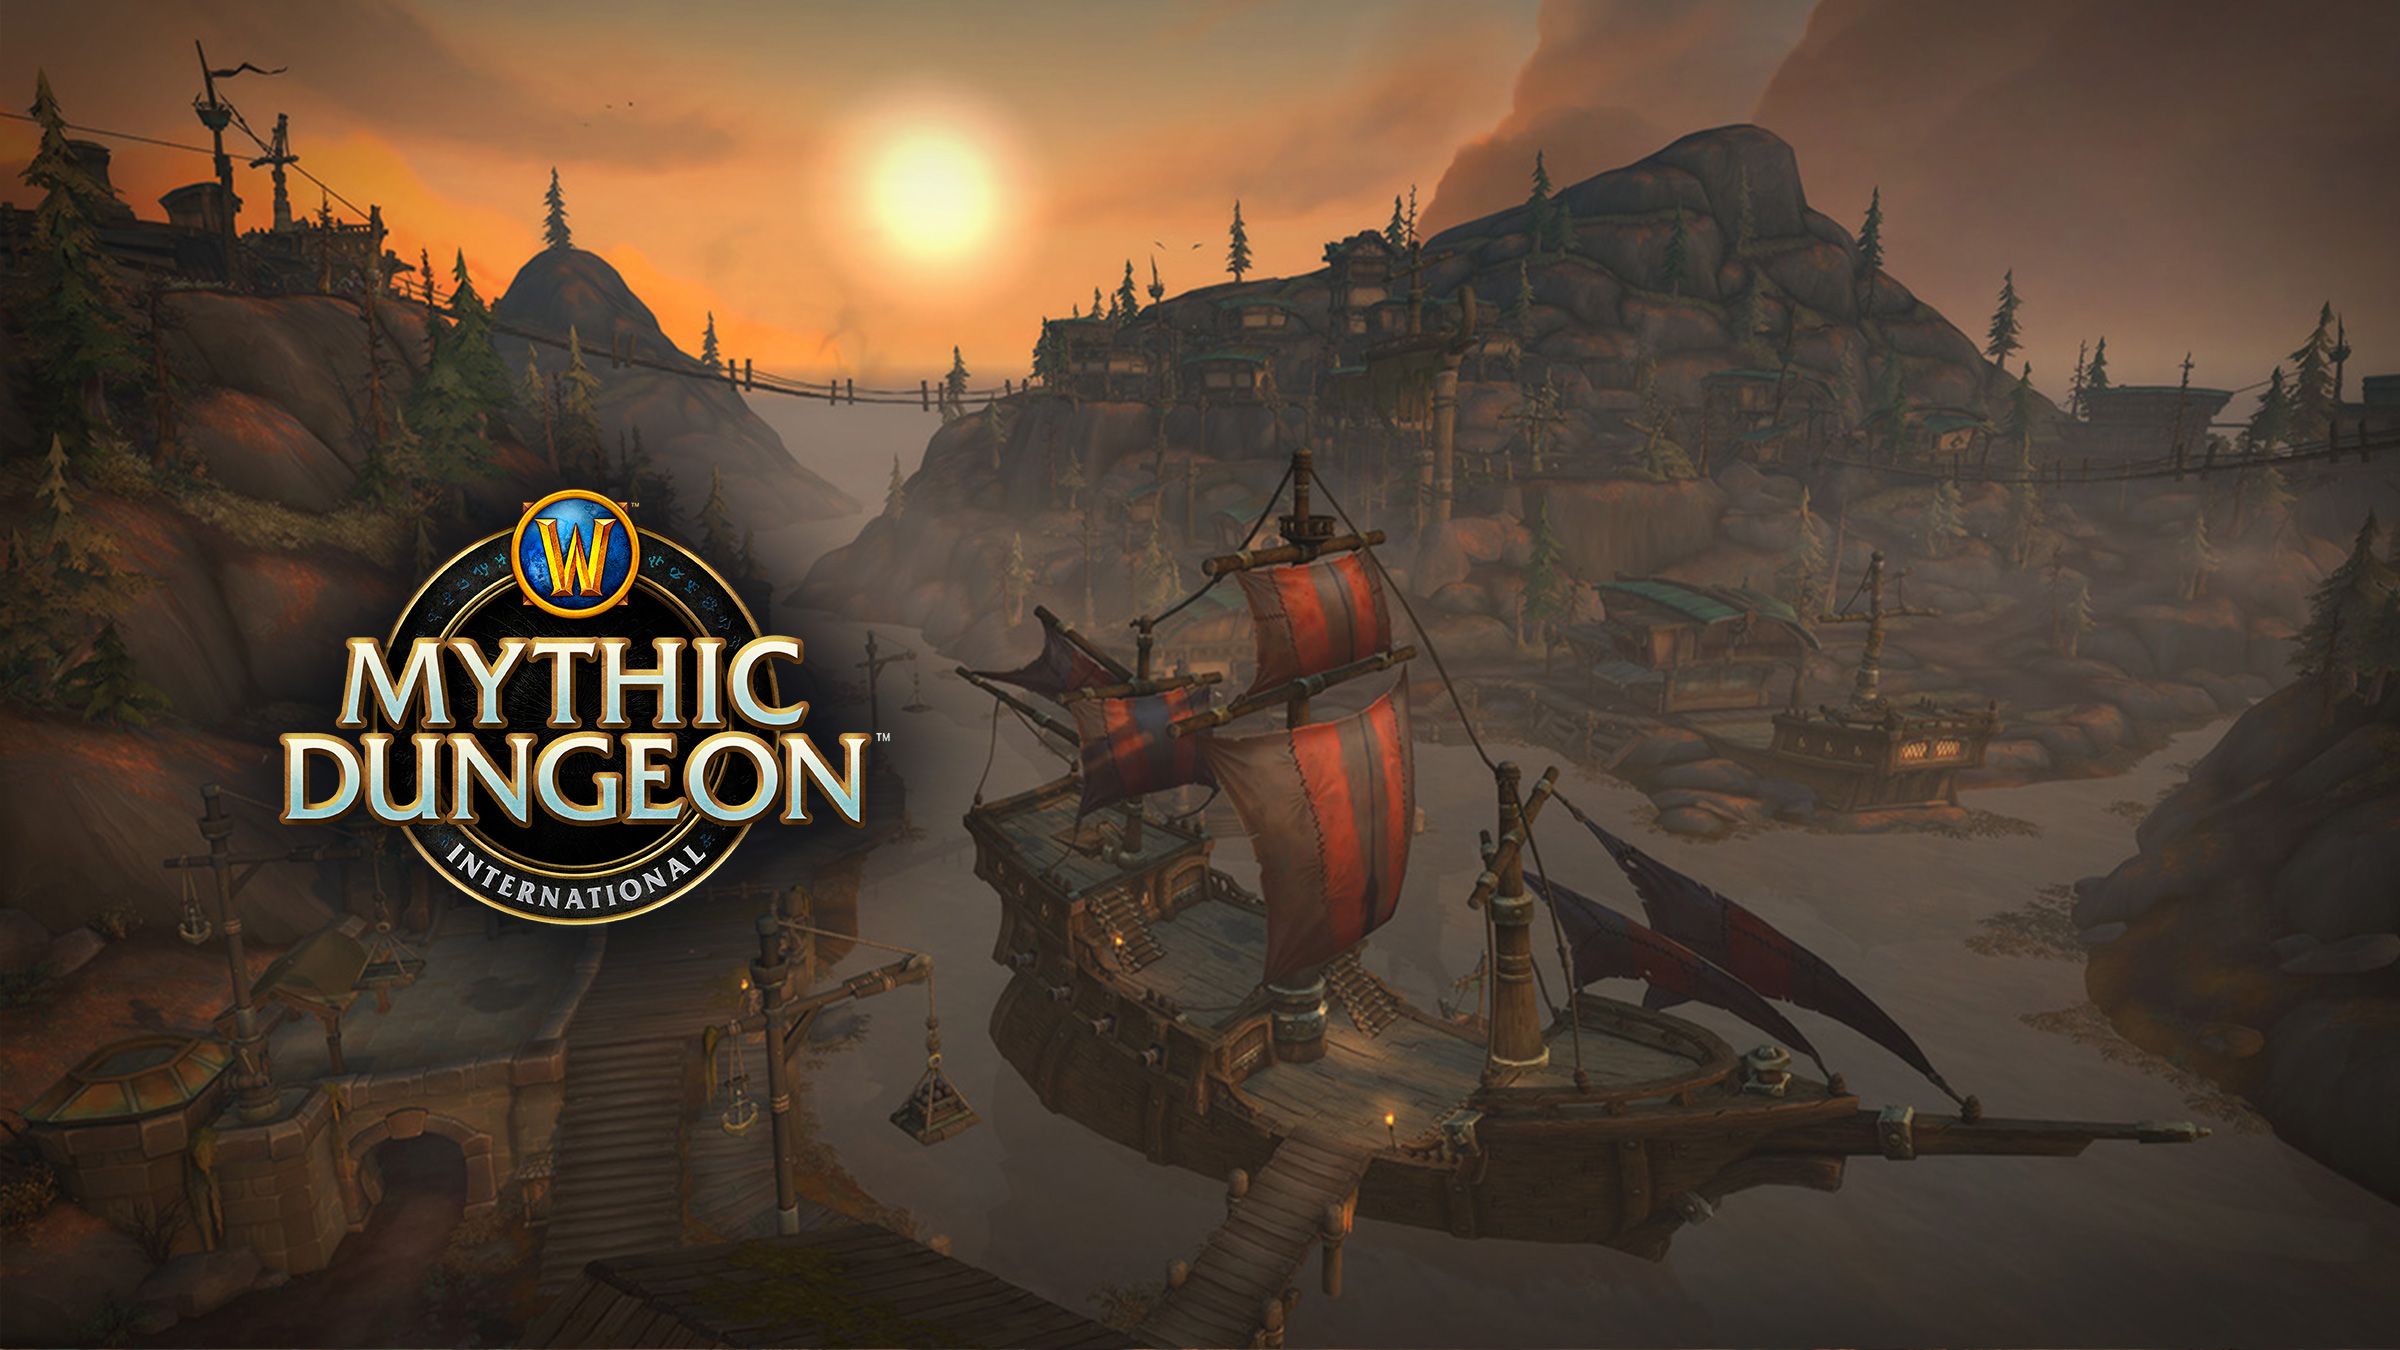 Die Summer Season des Mythic Dungeon Internationals beginnt bald!